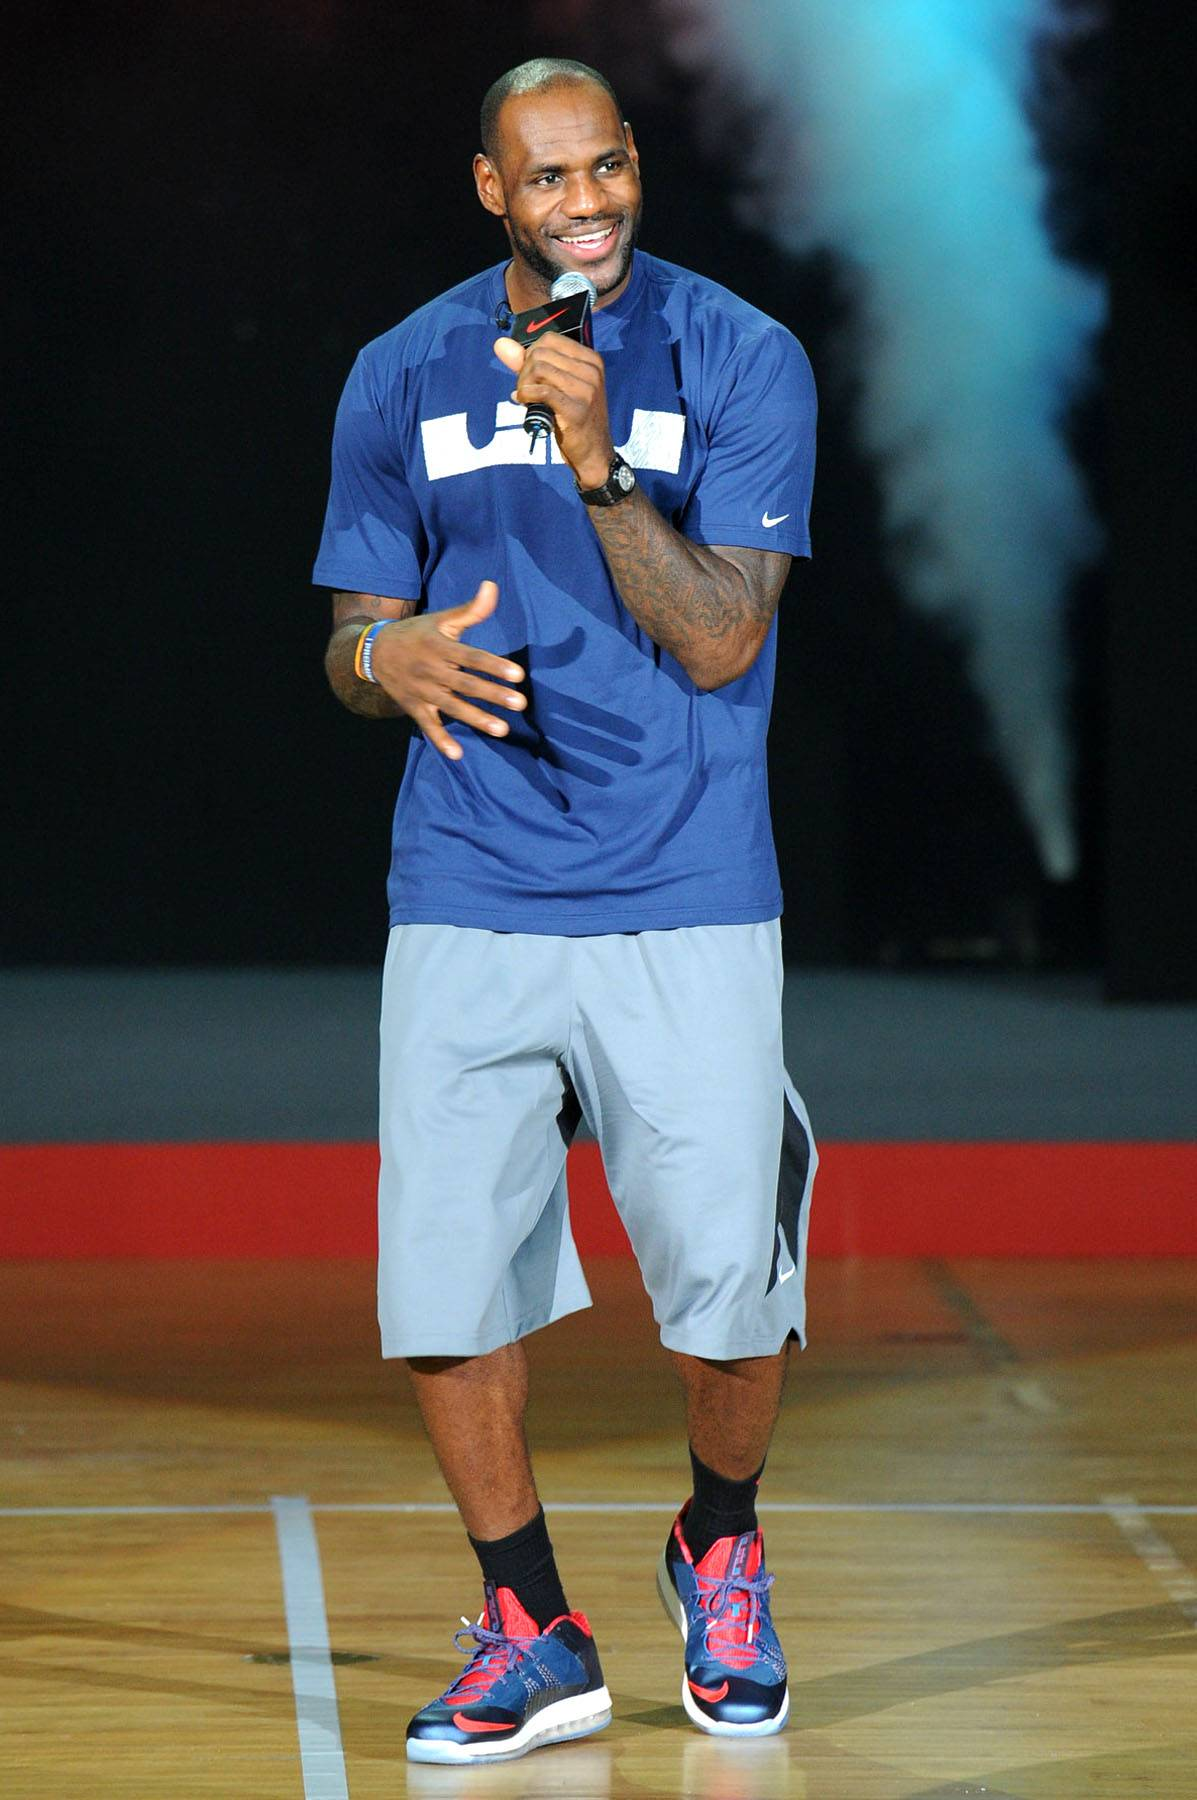 Taking On TV - It looks like LeBron James is taking his talents off of the courts and to the TV as an executive producer for an upcoming sitcom on Starz. Congrats to LeBron on making this move and setting the standards high for other stars in the league. (Photo: ChinaFotoPress/ChinaFotoPress via Getty Images)